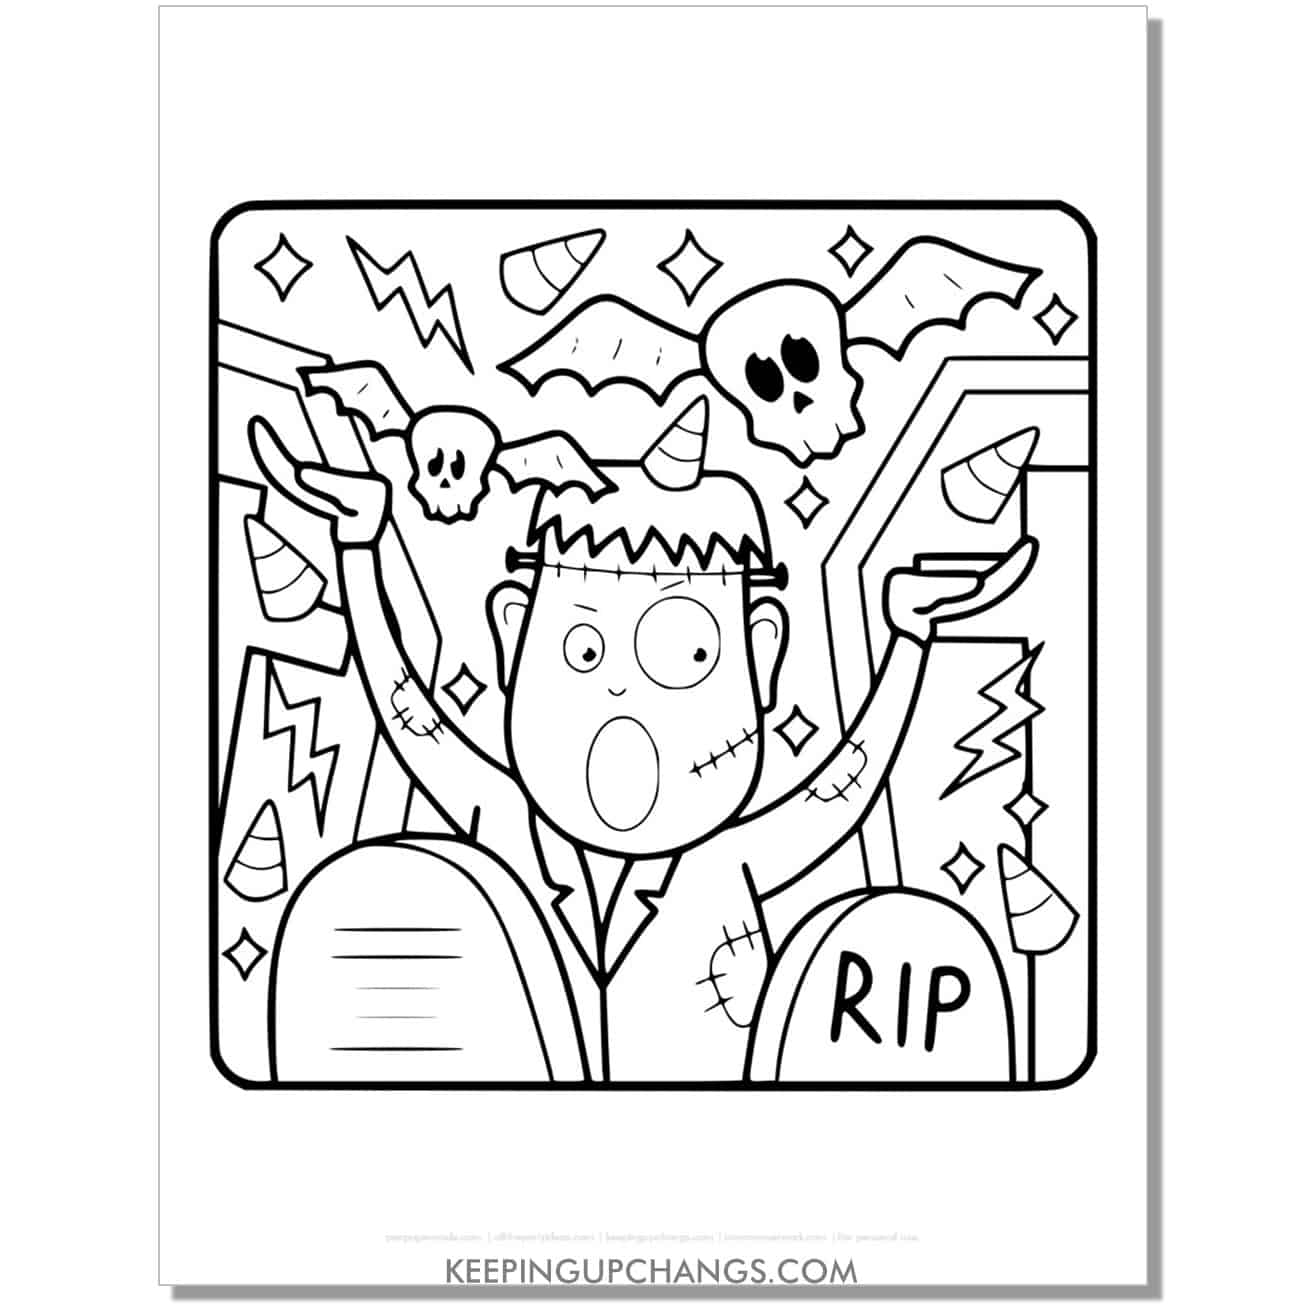 free frankenstein coloring page page for toddlers with skull bats and candy corn.